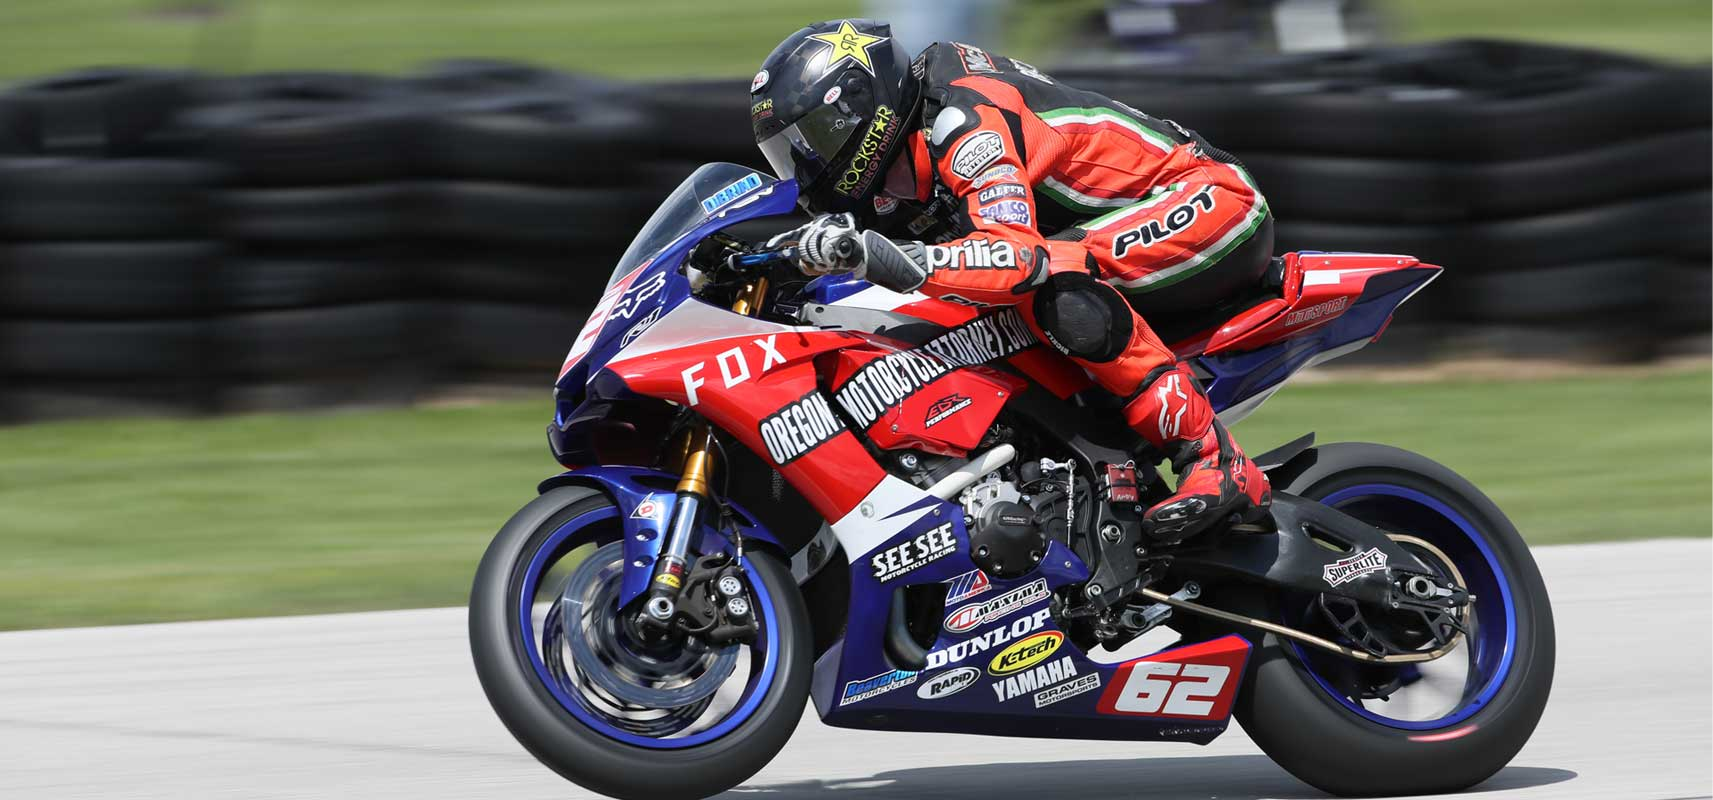 Andy DiBrino riding tight and aerostreamed ripping down the track MotoAmerica Wisconsin on his EDR Performance R1 - maybe a little wheelie but we'll have to ask Andy.